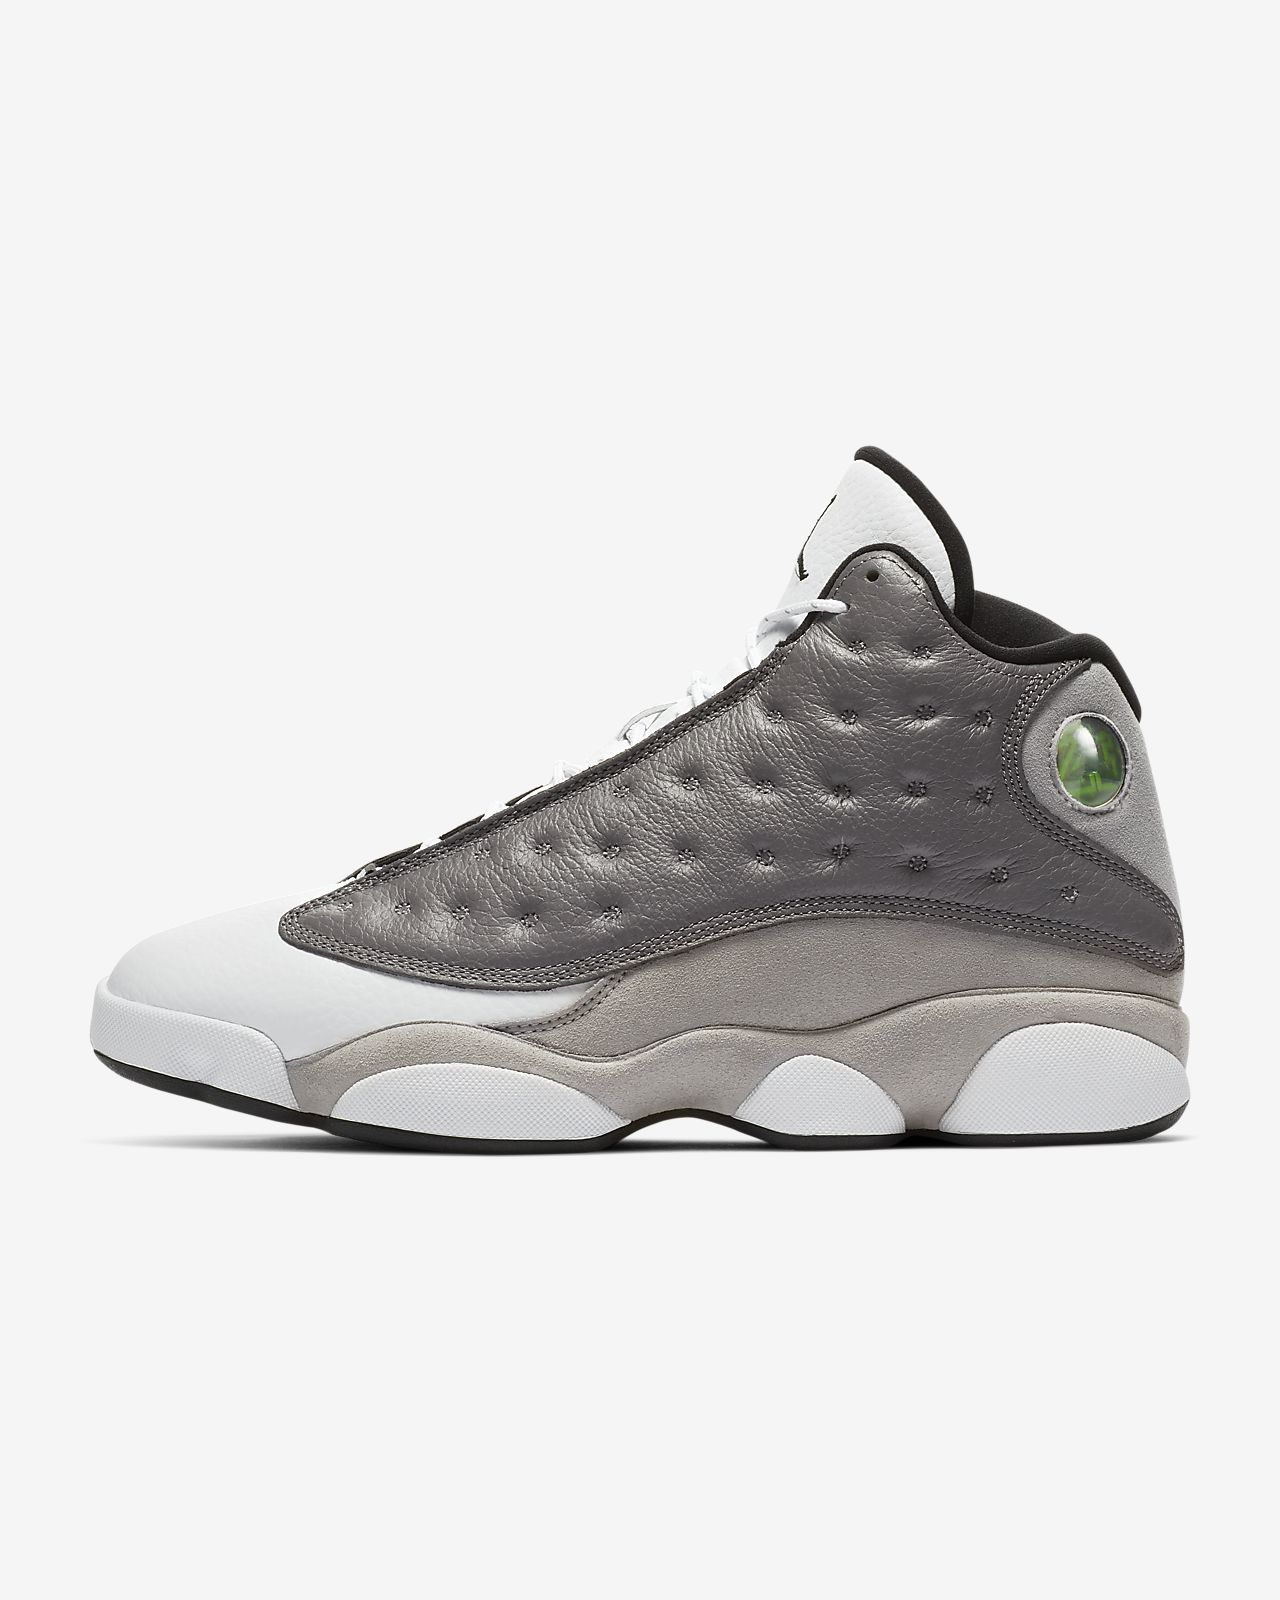 8f6b1489f87 Air Jordan 13 Retro Men's Shoe. Nike.com ID